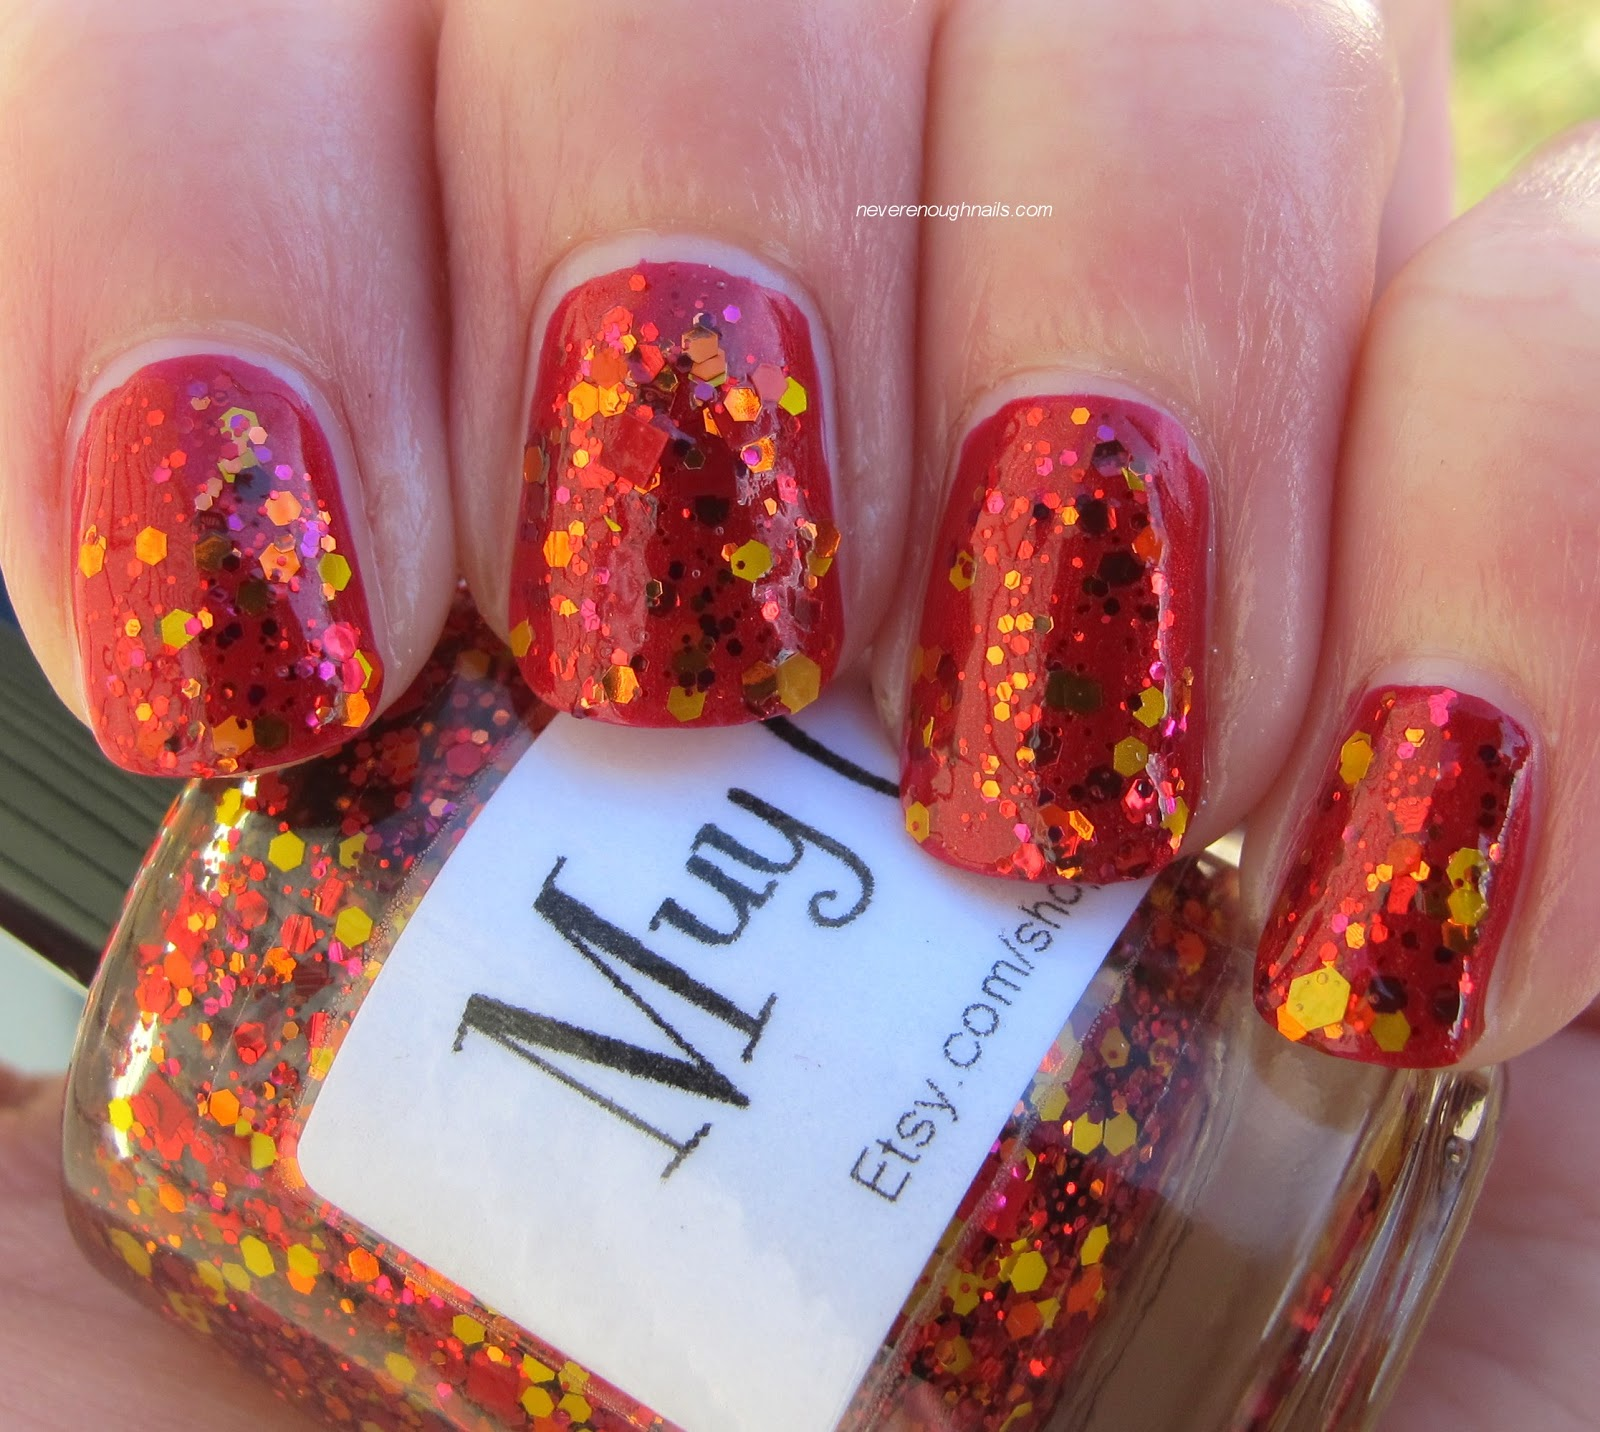 Never Enough Nails: Glimmer by Erica Muy Caliente!